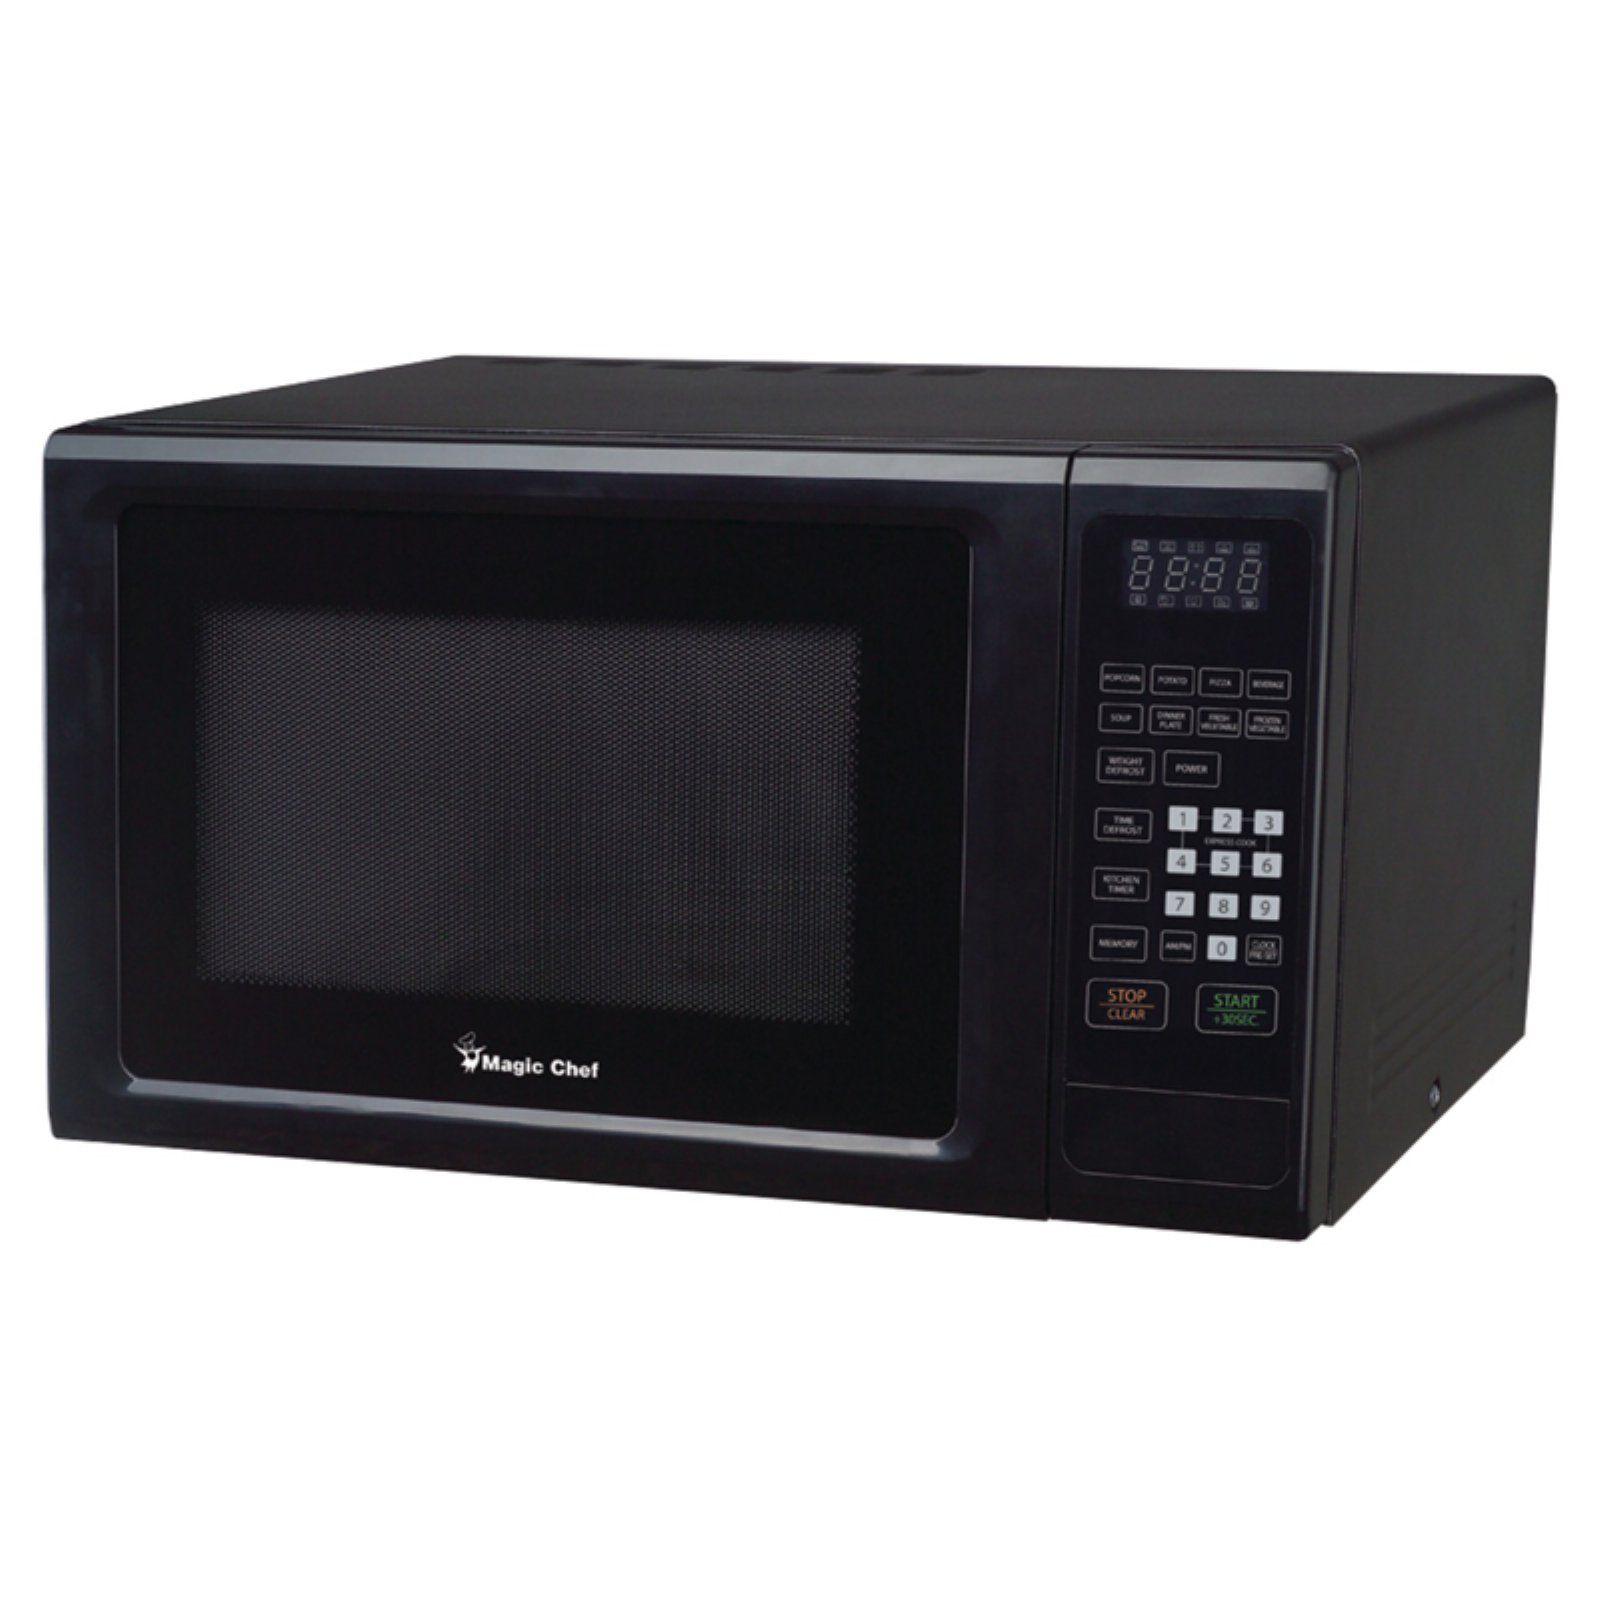 Magic Chef 1.1 cu ft Microwave